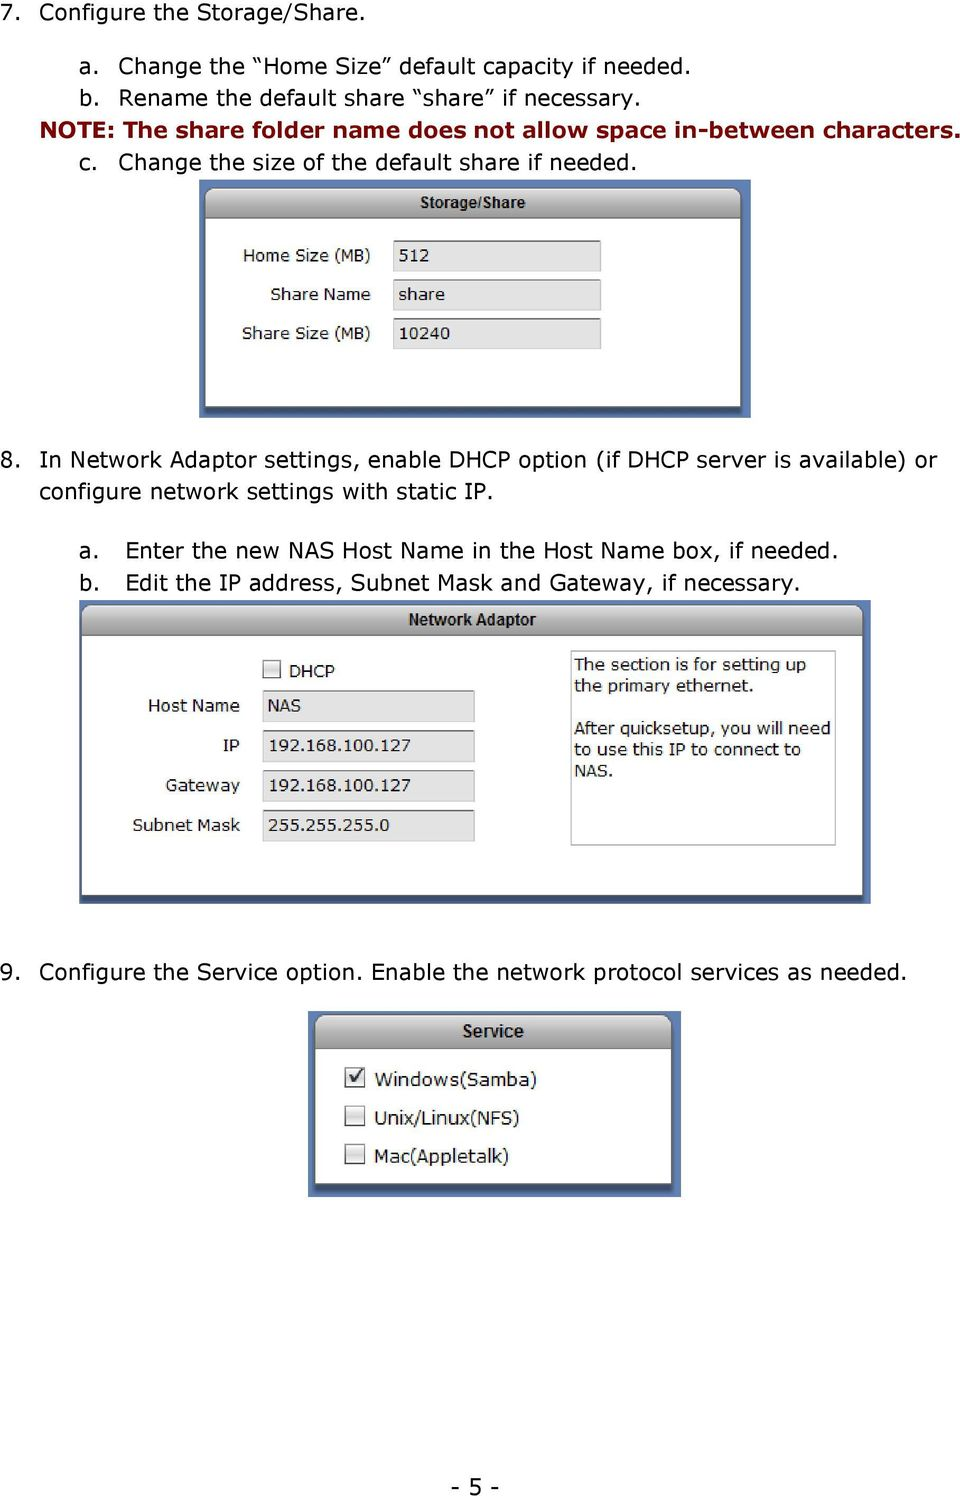 In Network Adaptor settings, enable DHCP option (if DHCP server is available) or configure network settings with static IP. a. Enter the new NAS Host Name in the Host Name box, if needed.